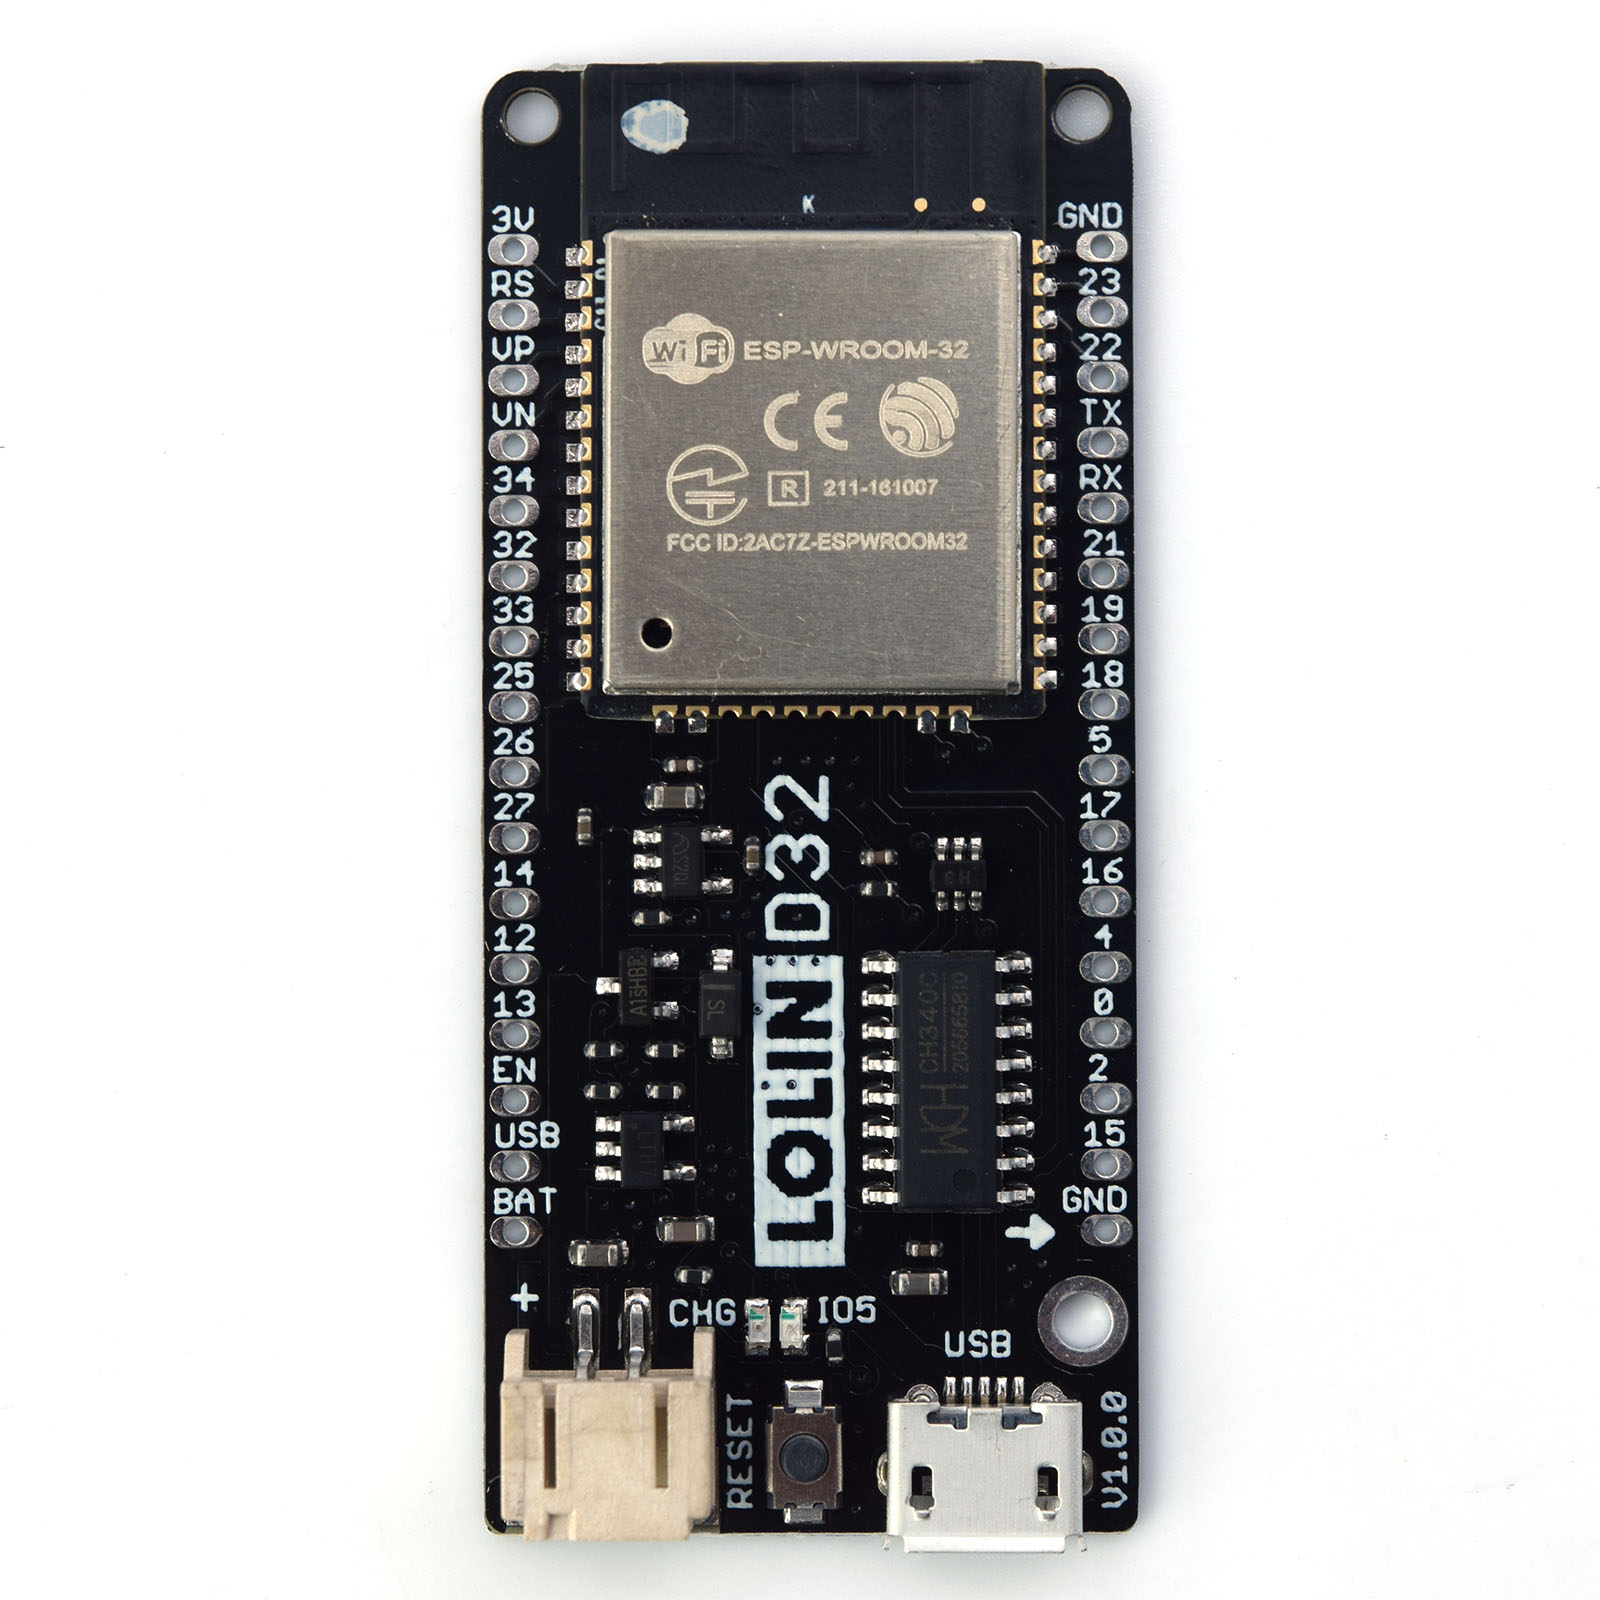 WEMOS LOLIN32 V1.0.0 - wifi & bluetooth board based ESP-32 4MB FLASH writing